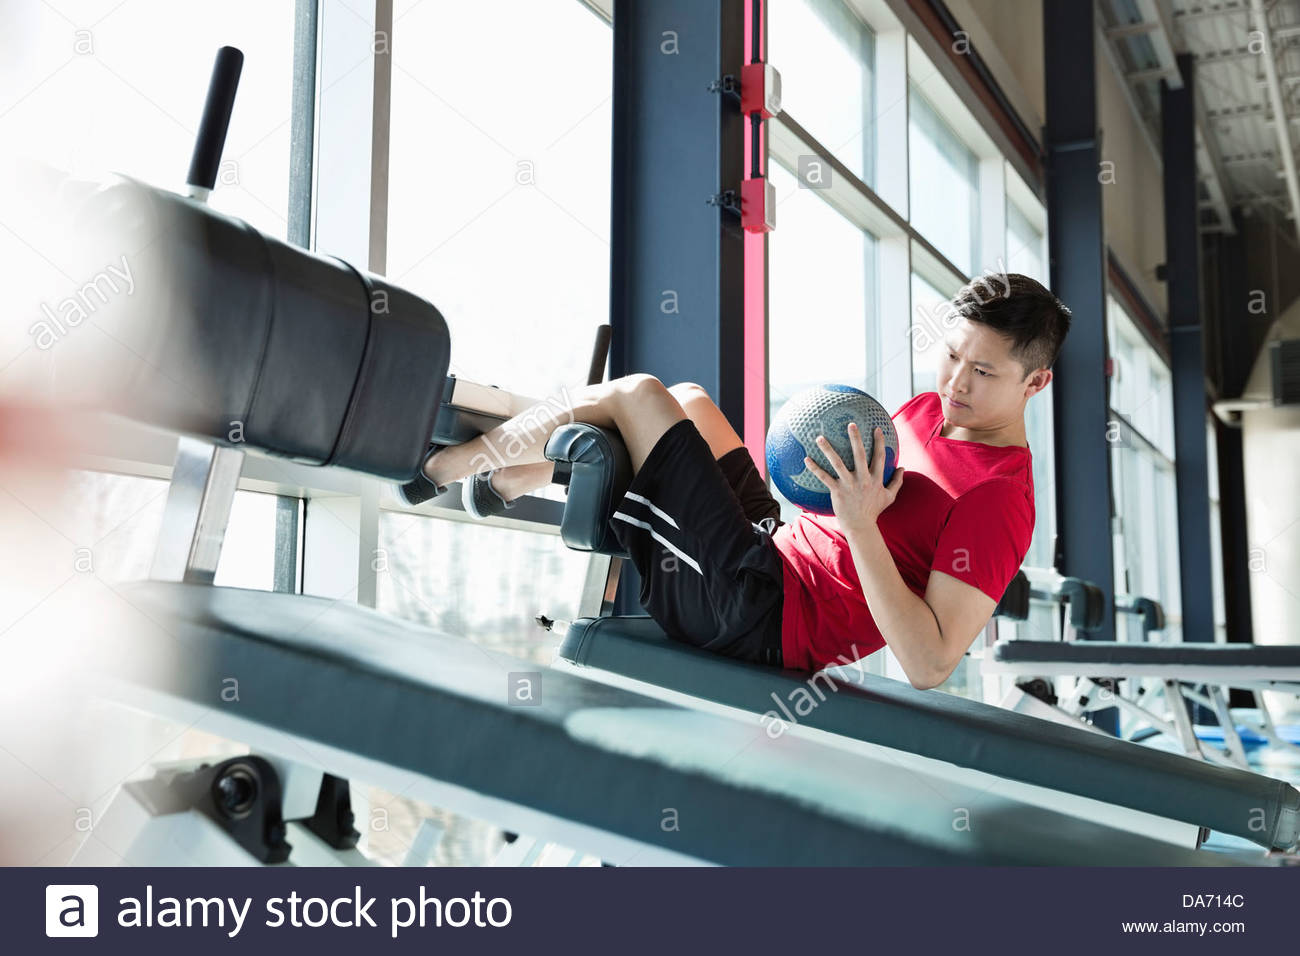 Man exercising with medicine ball at fitness center - Stock Image